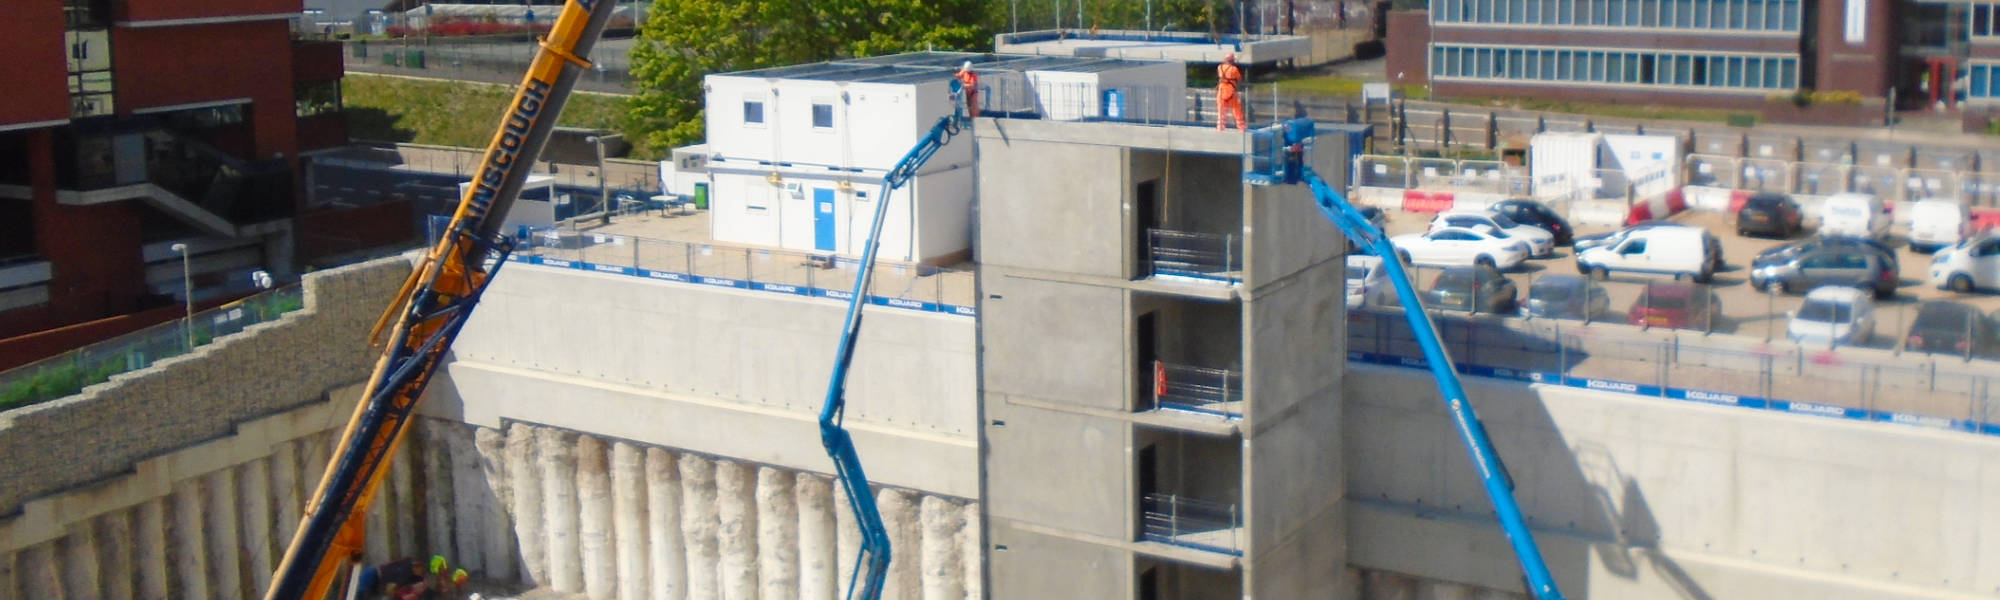 125 number of components erected to form the two 4 storey lift and stair cores in just 17 working days